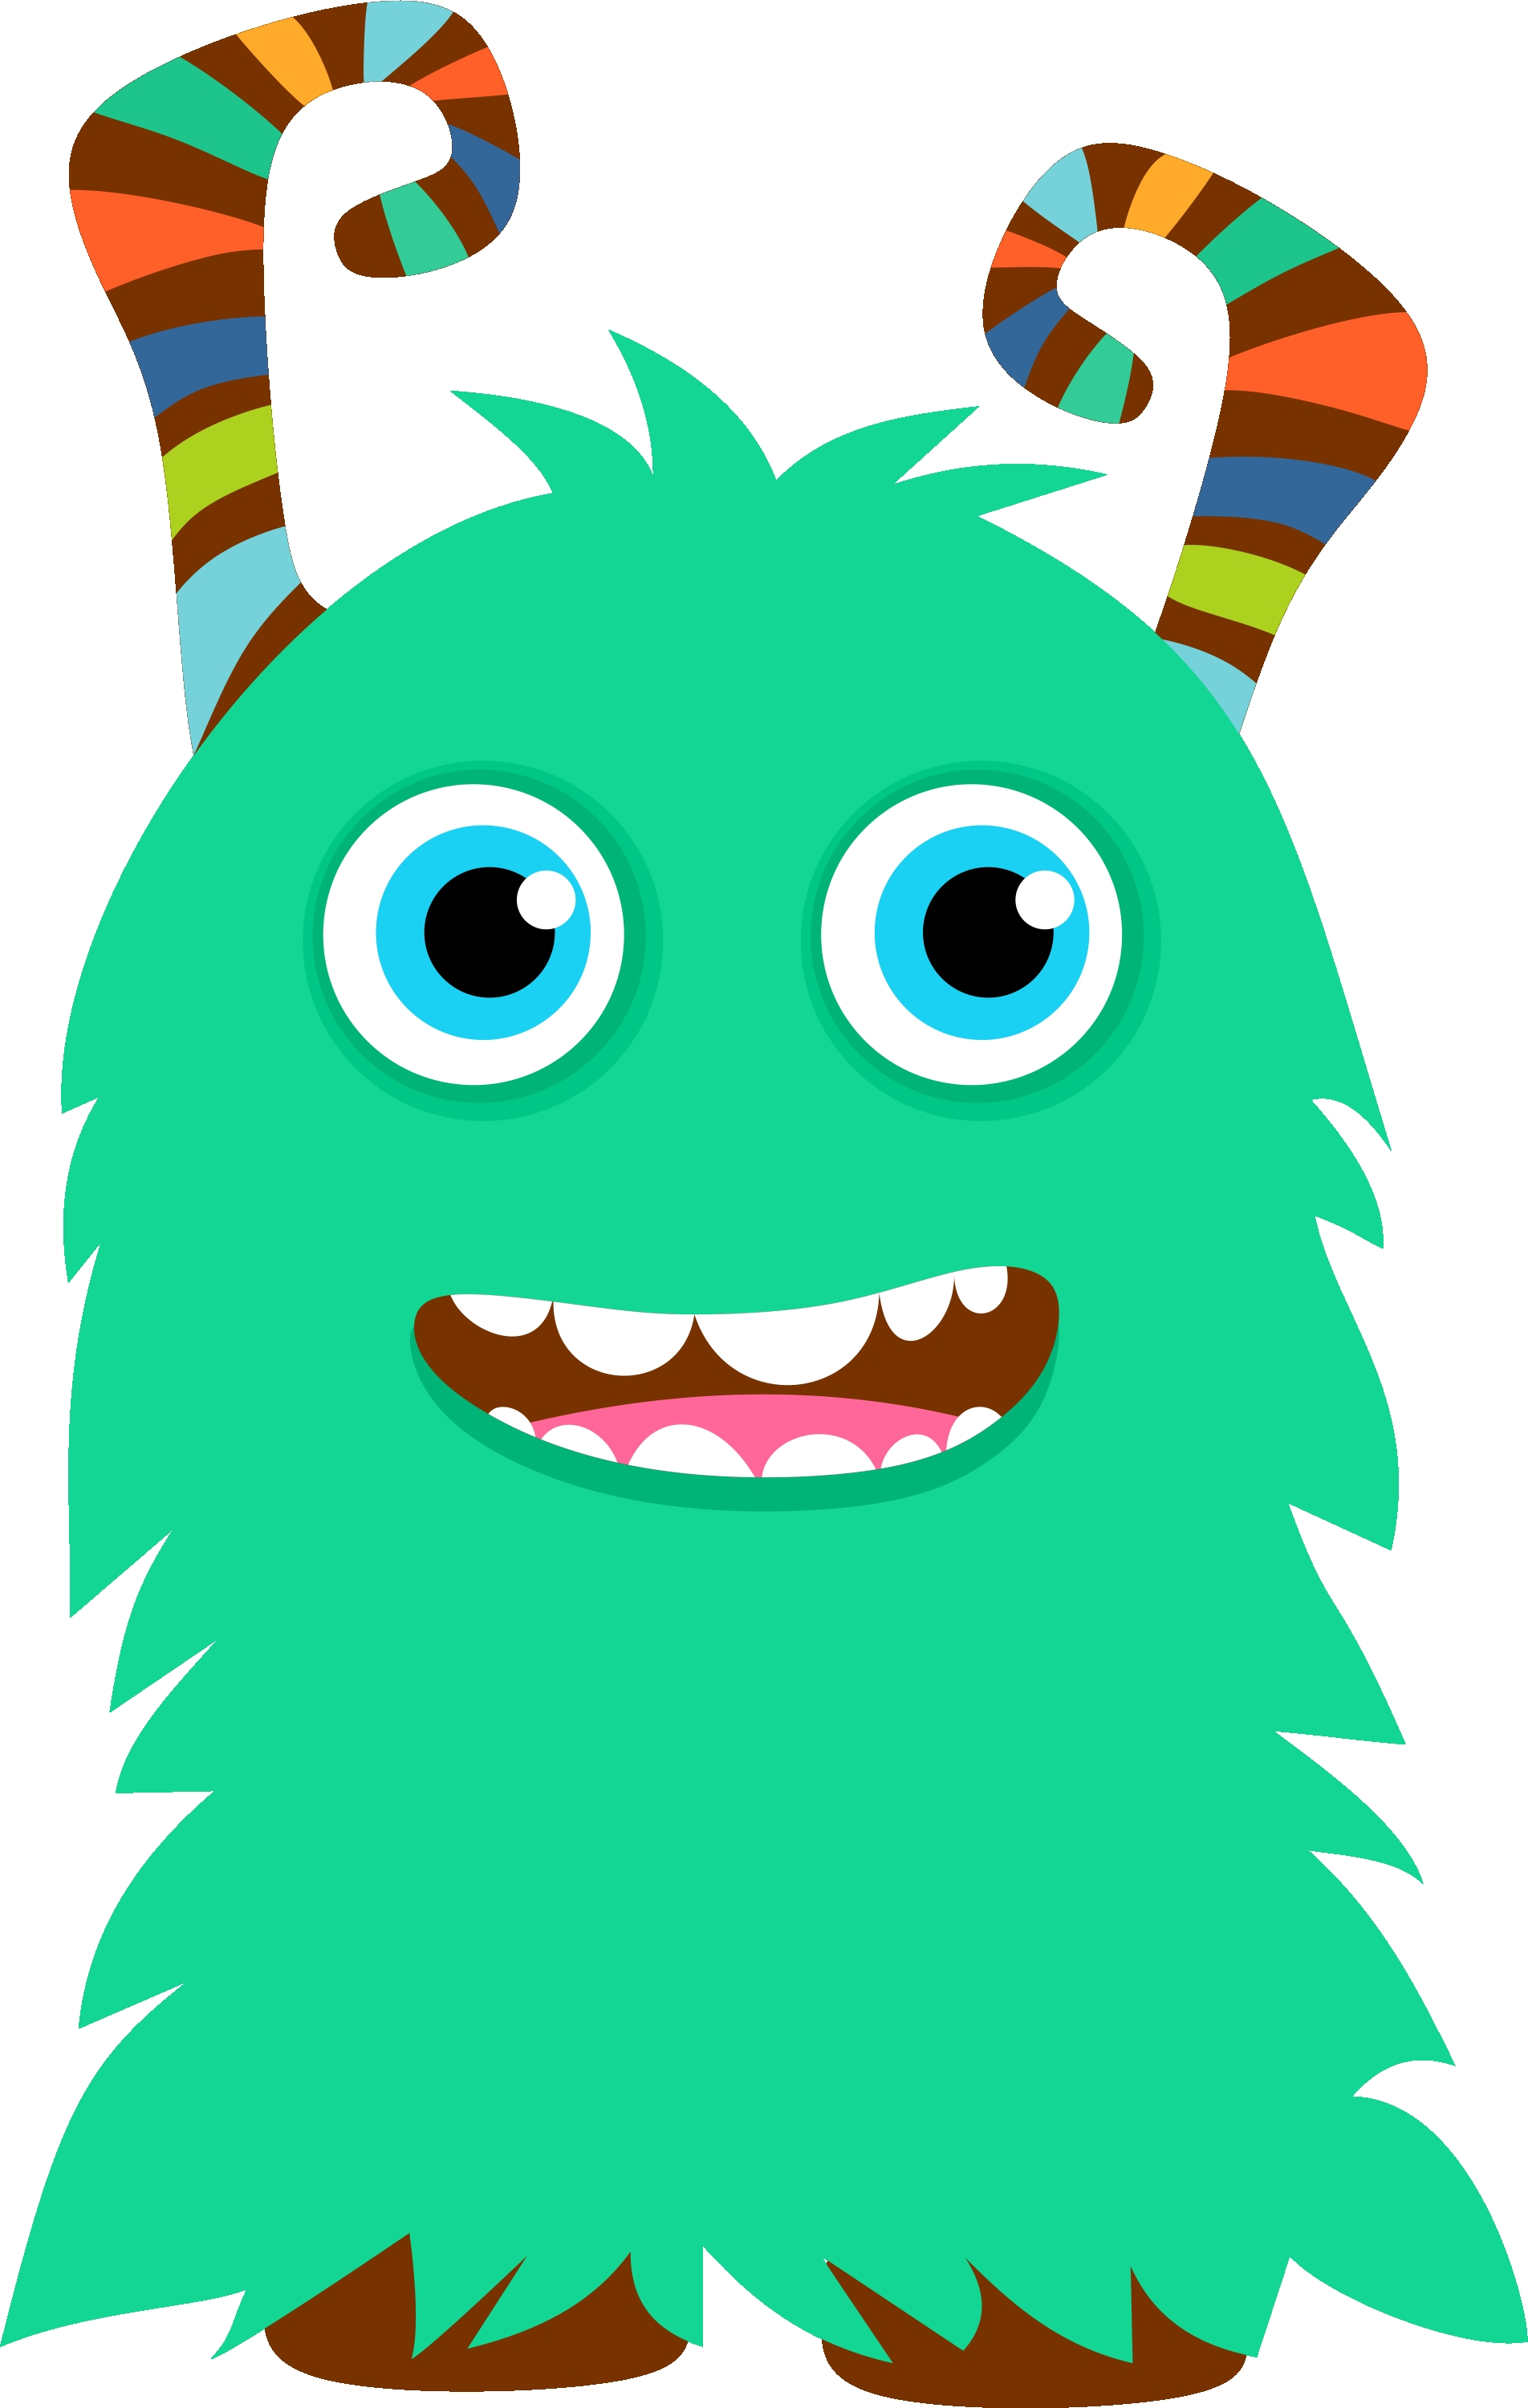 2 clipart monsters. Best of monster collection